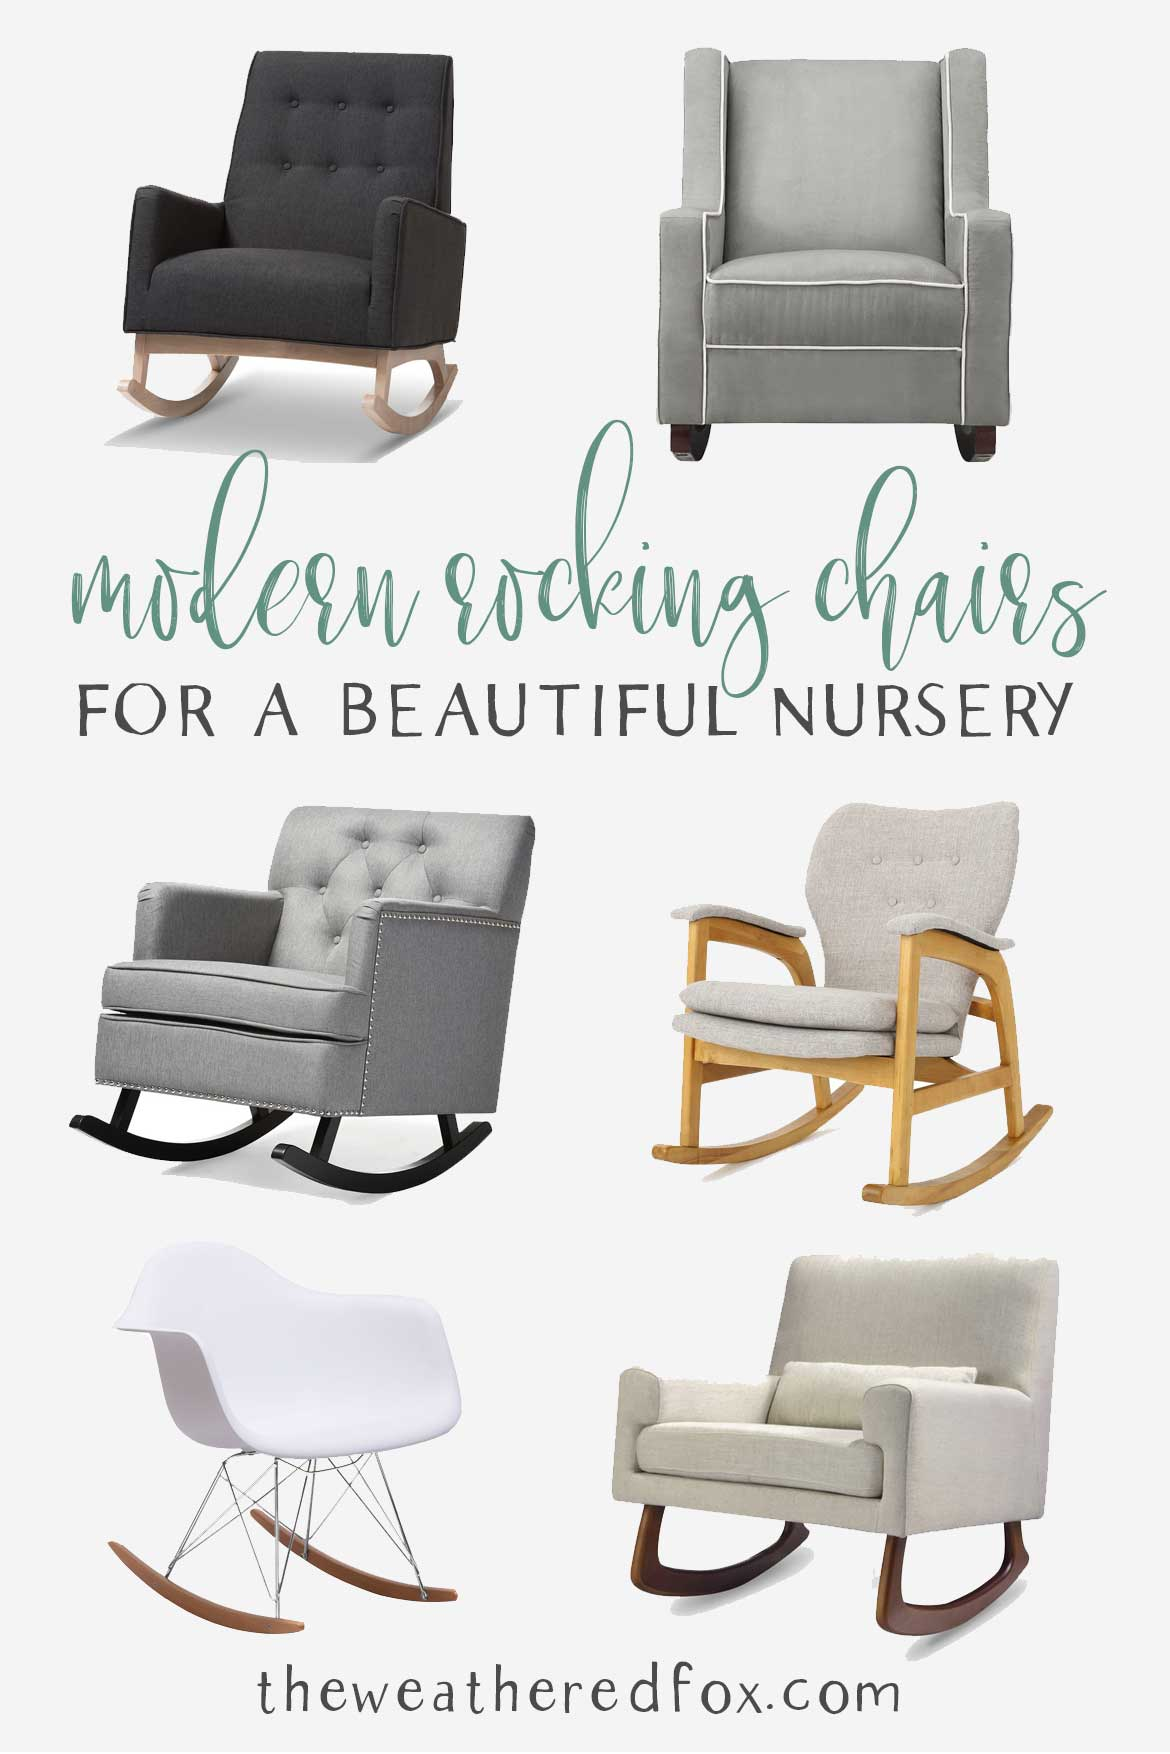 Modern Rocking Chairs for a Beautiful Nursery!